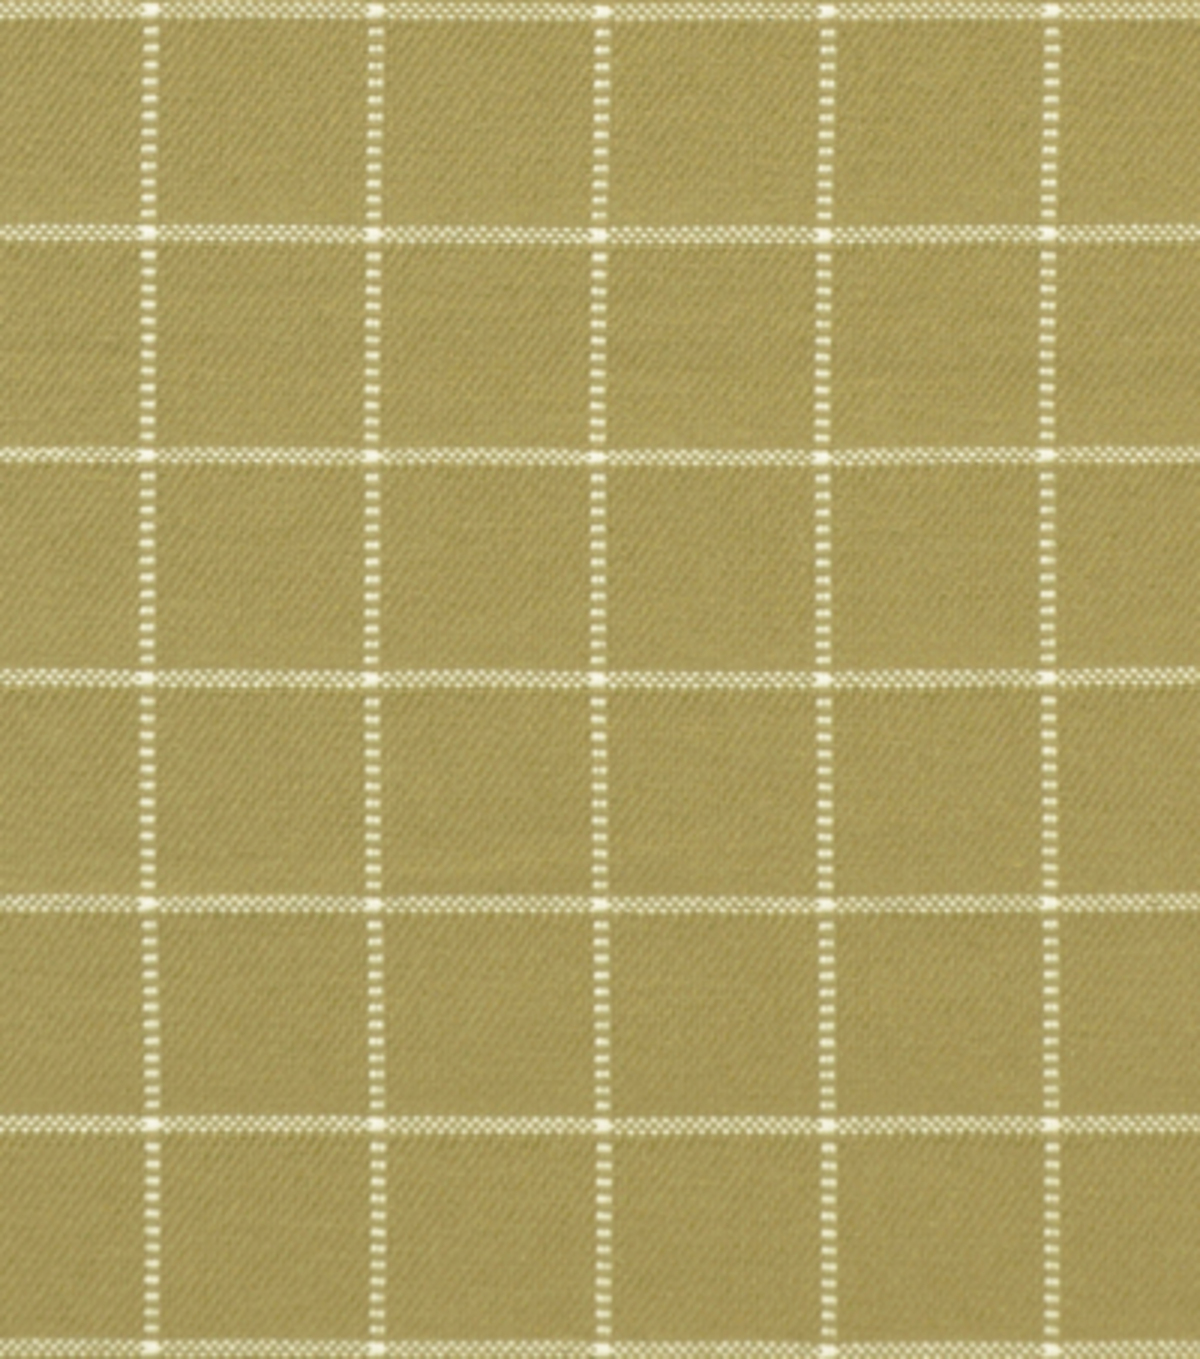 "Home Decor 8""x8"" Fabric Swatch-Covington Ansible 166 Sand"